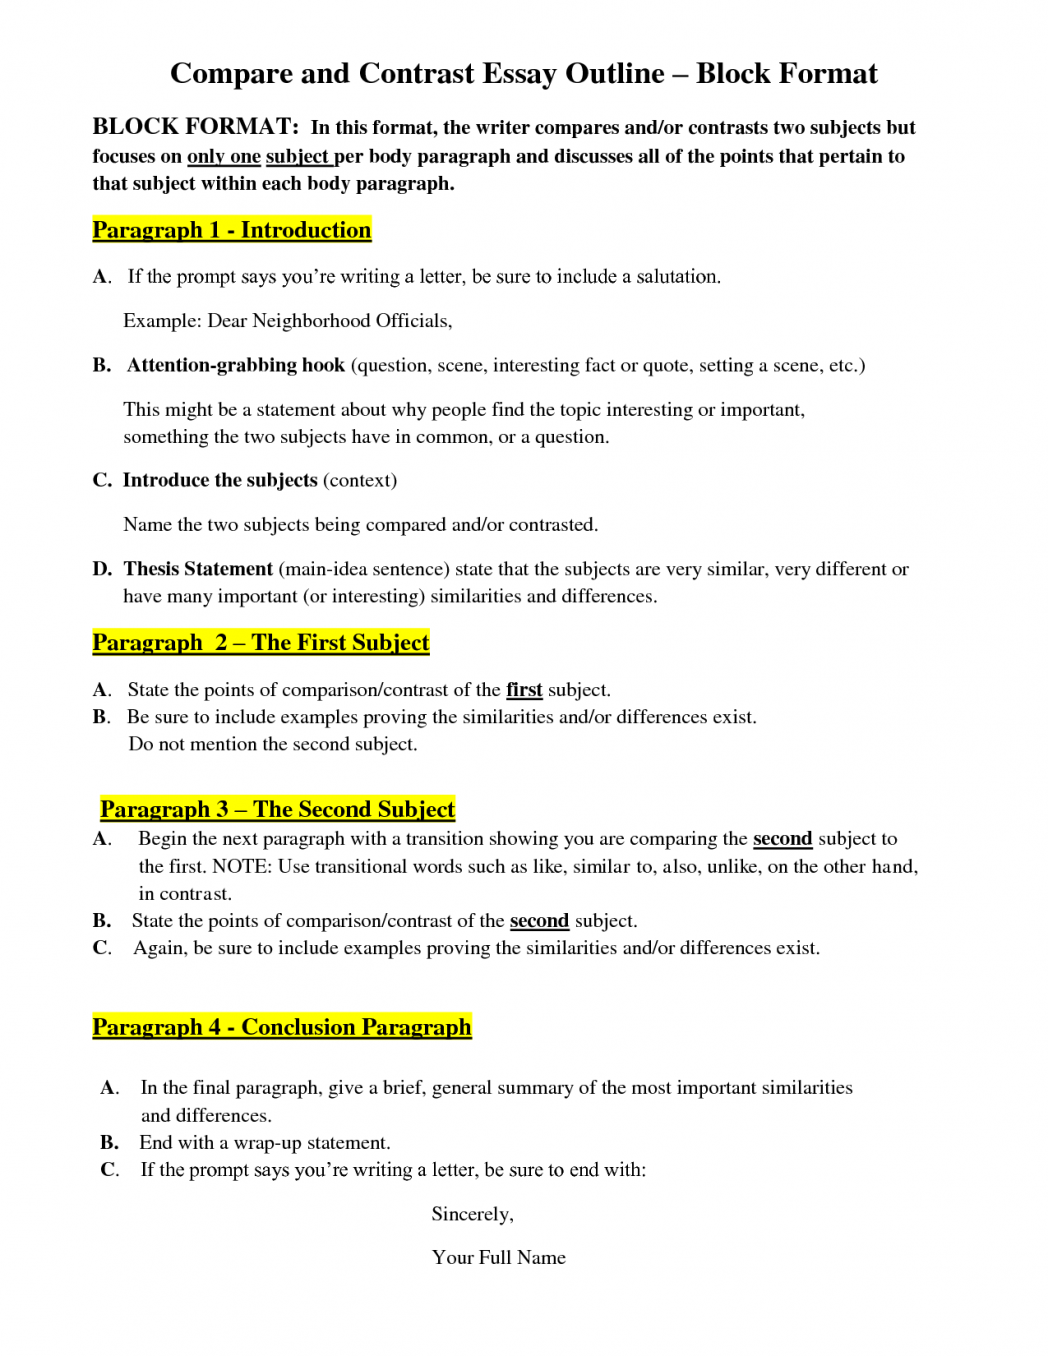 007 Ucf Essay Questions Compare And Contrast Samples For College Typical Application Outline Block Unique Stanford Best Weird Universals 1048x1356 Fascinating Admission Question Word Limit Full